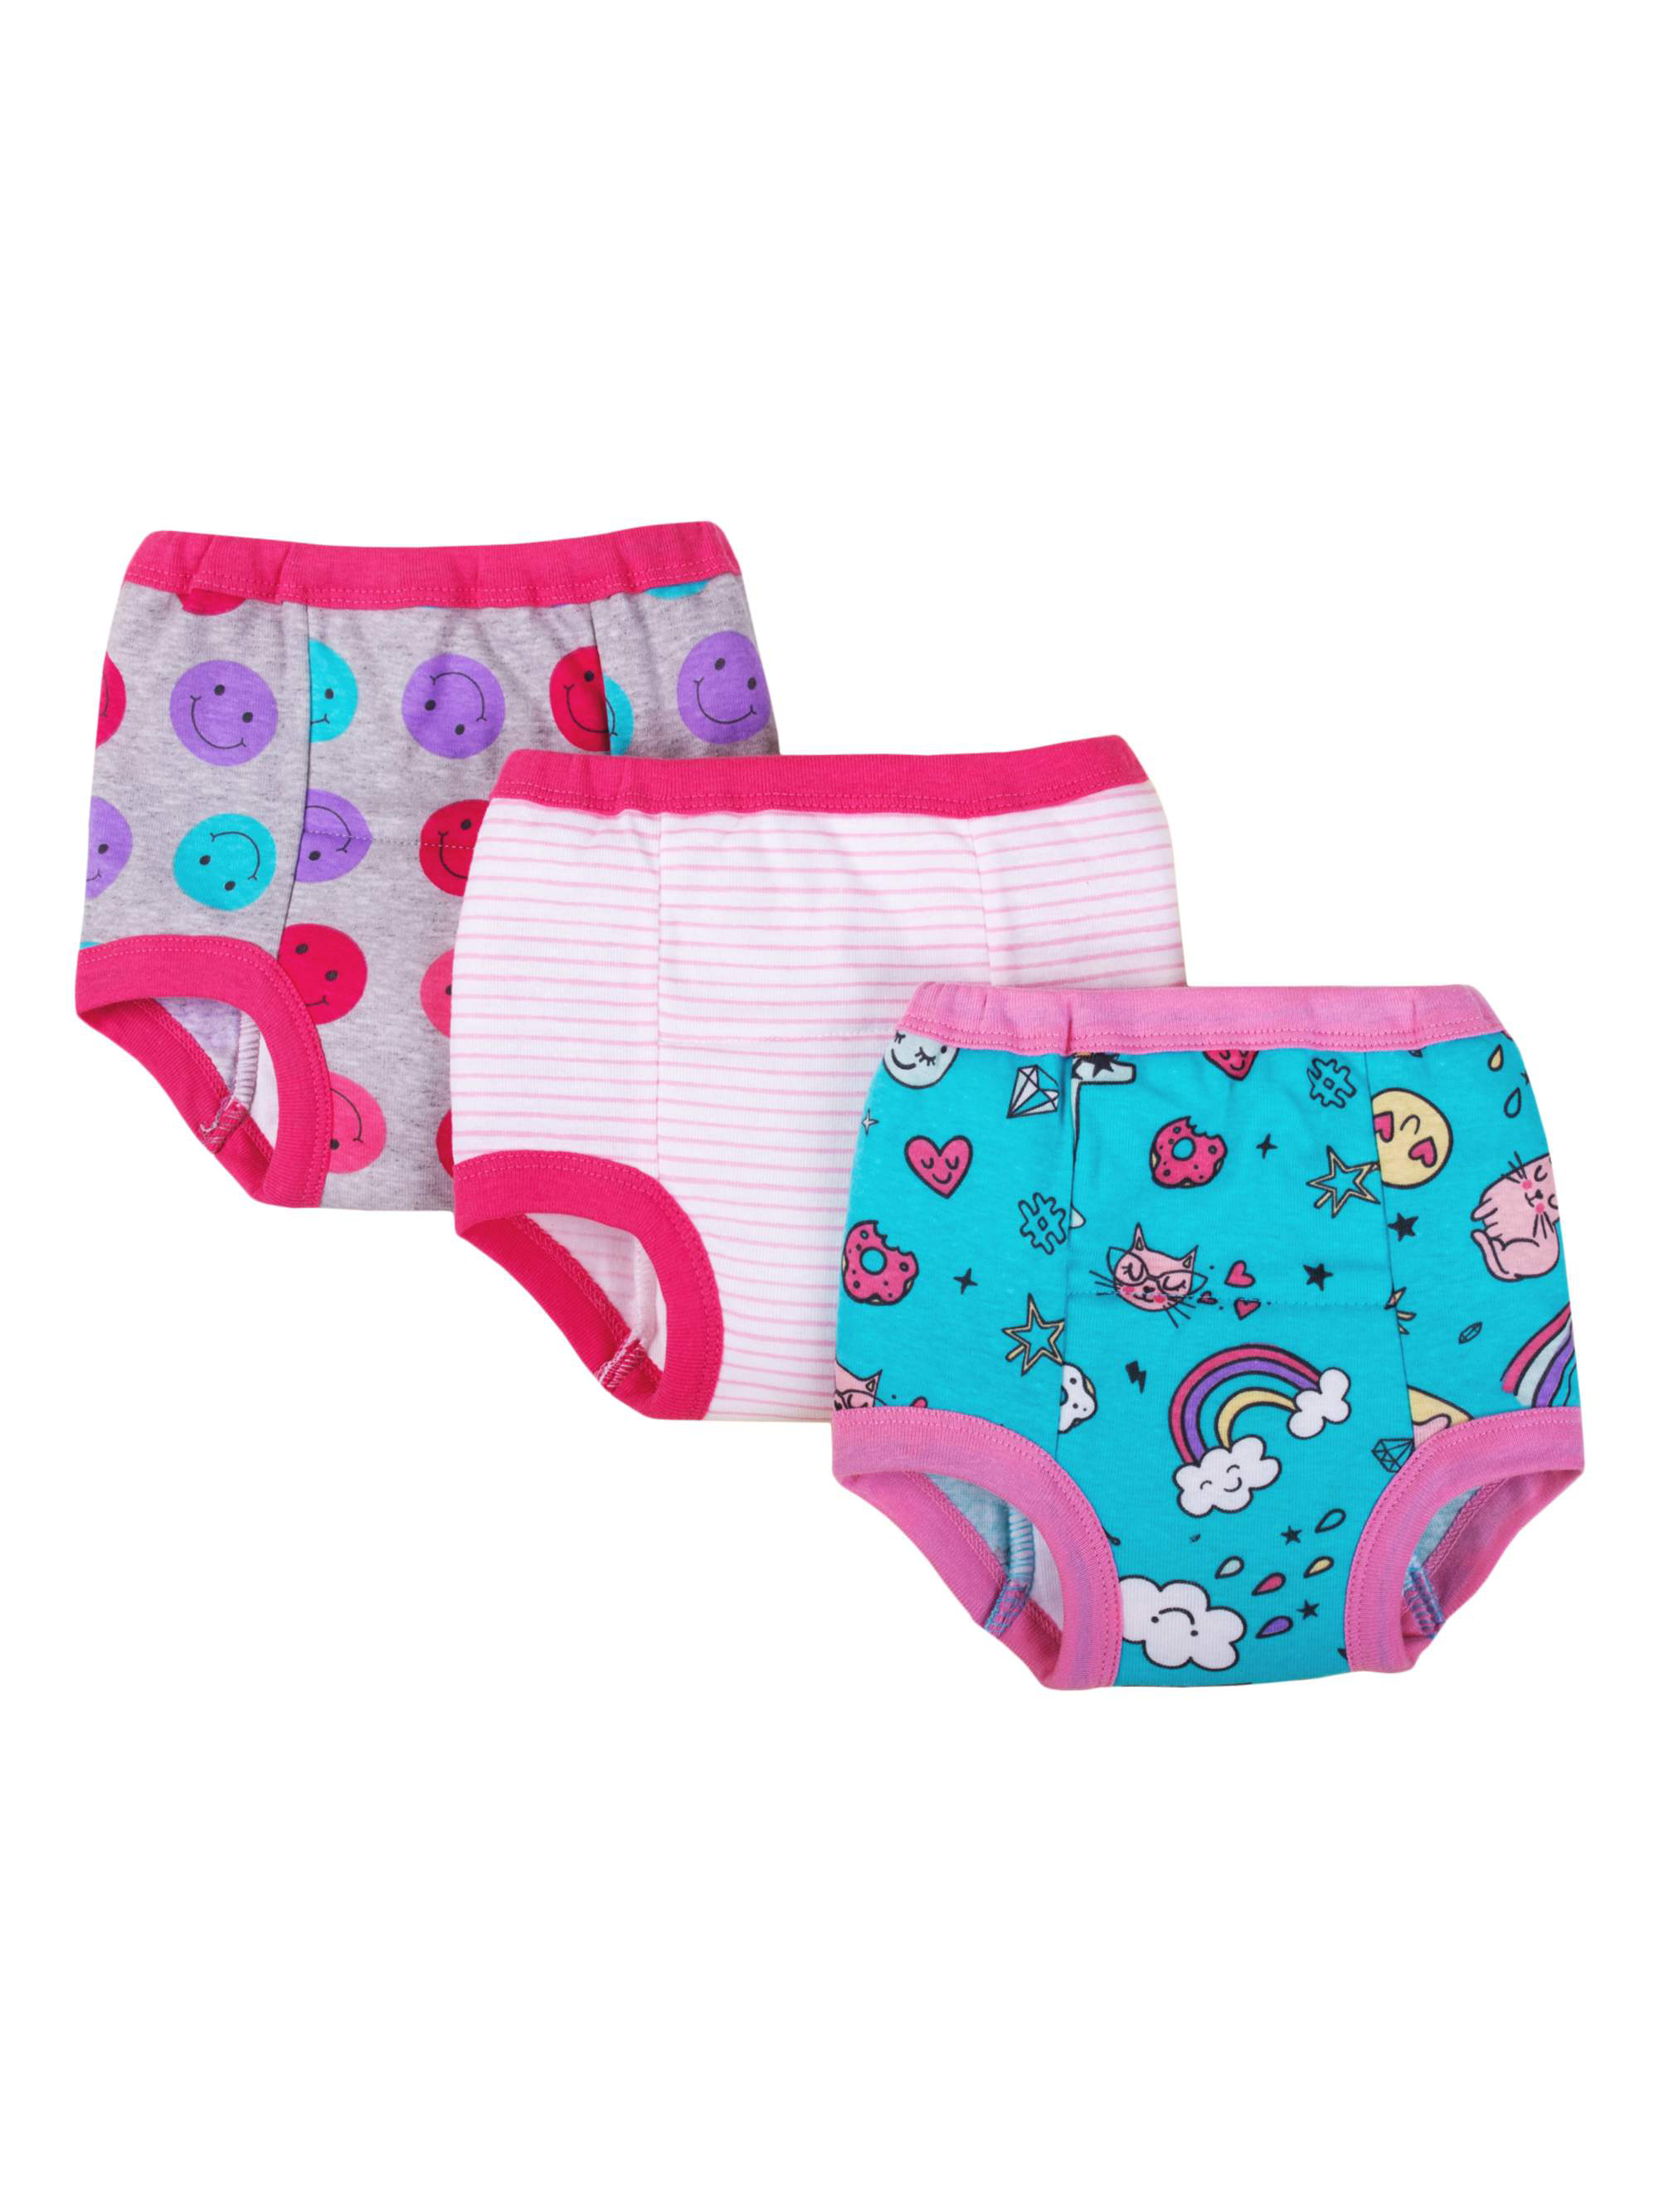 Little Star Organic Assorted Training Pants, 3-pack (Toddler Girls)